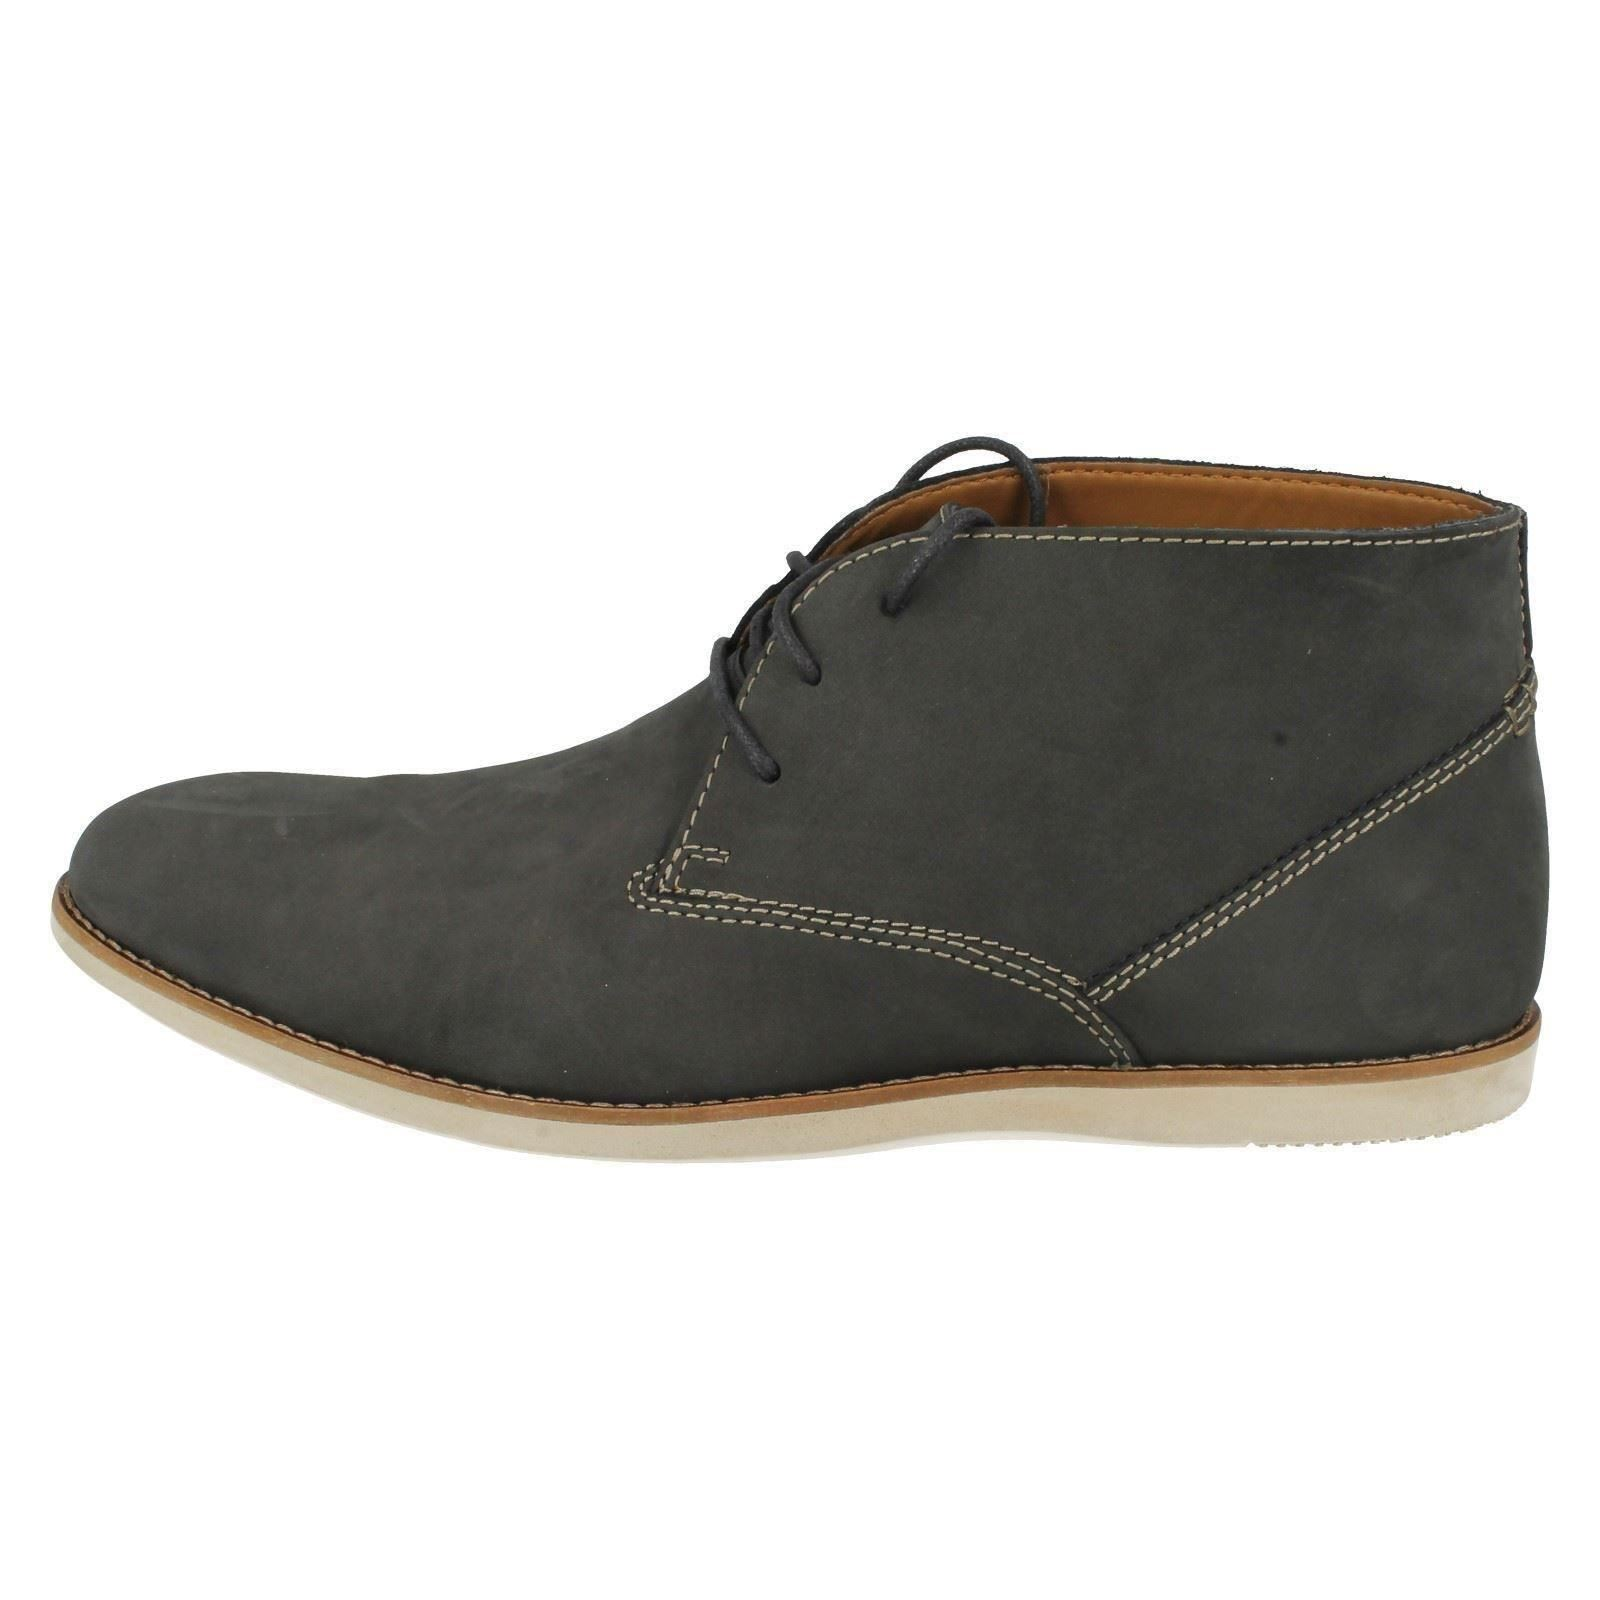 Details about Mens Clarks Lace Up Ankle Boots Franson Top